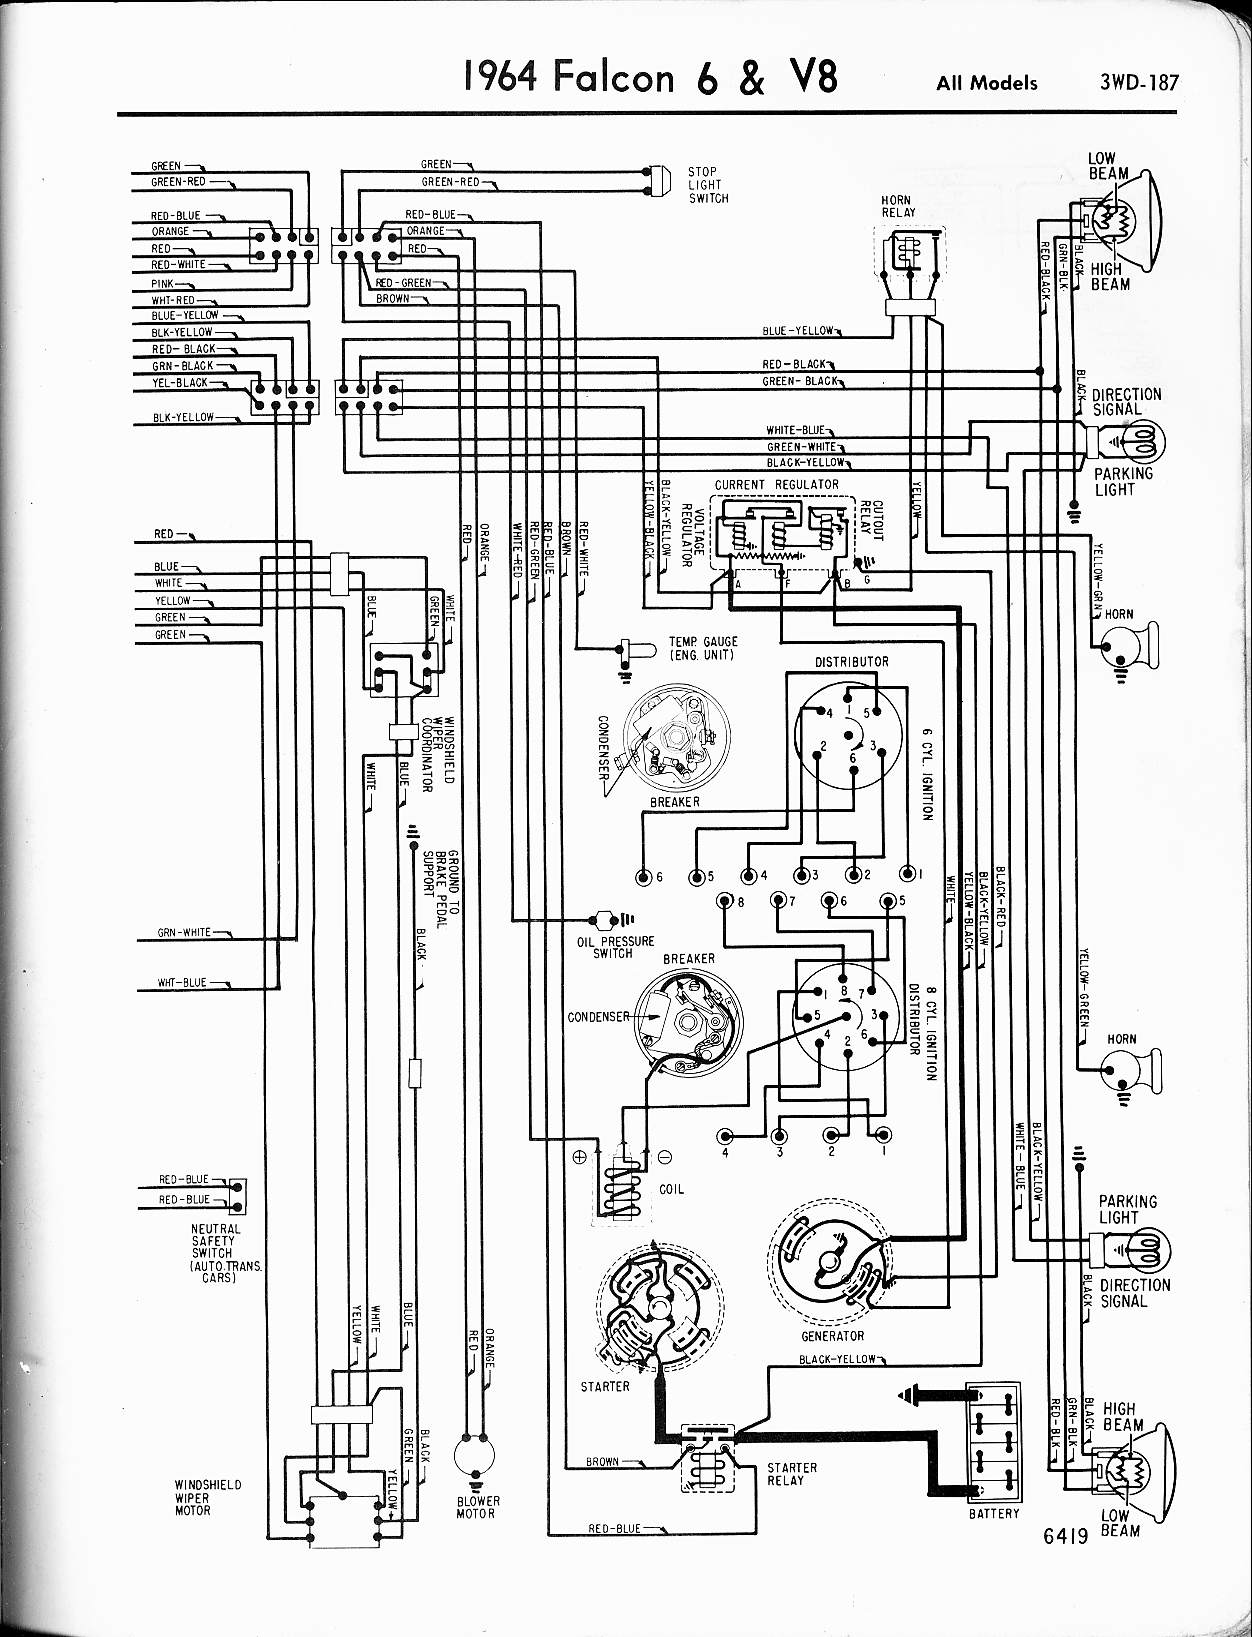 MWire5765 187 74 mercury comet wiring diagram on 74 download wirning diagrams 1955 ford wiring diagram at alyssarenee.co